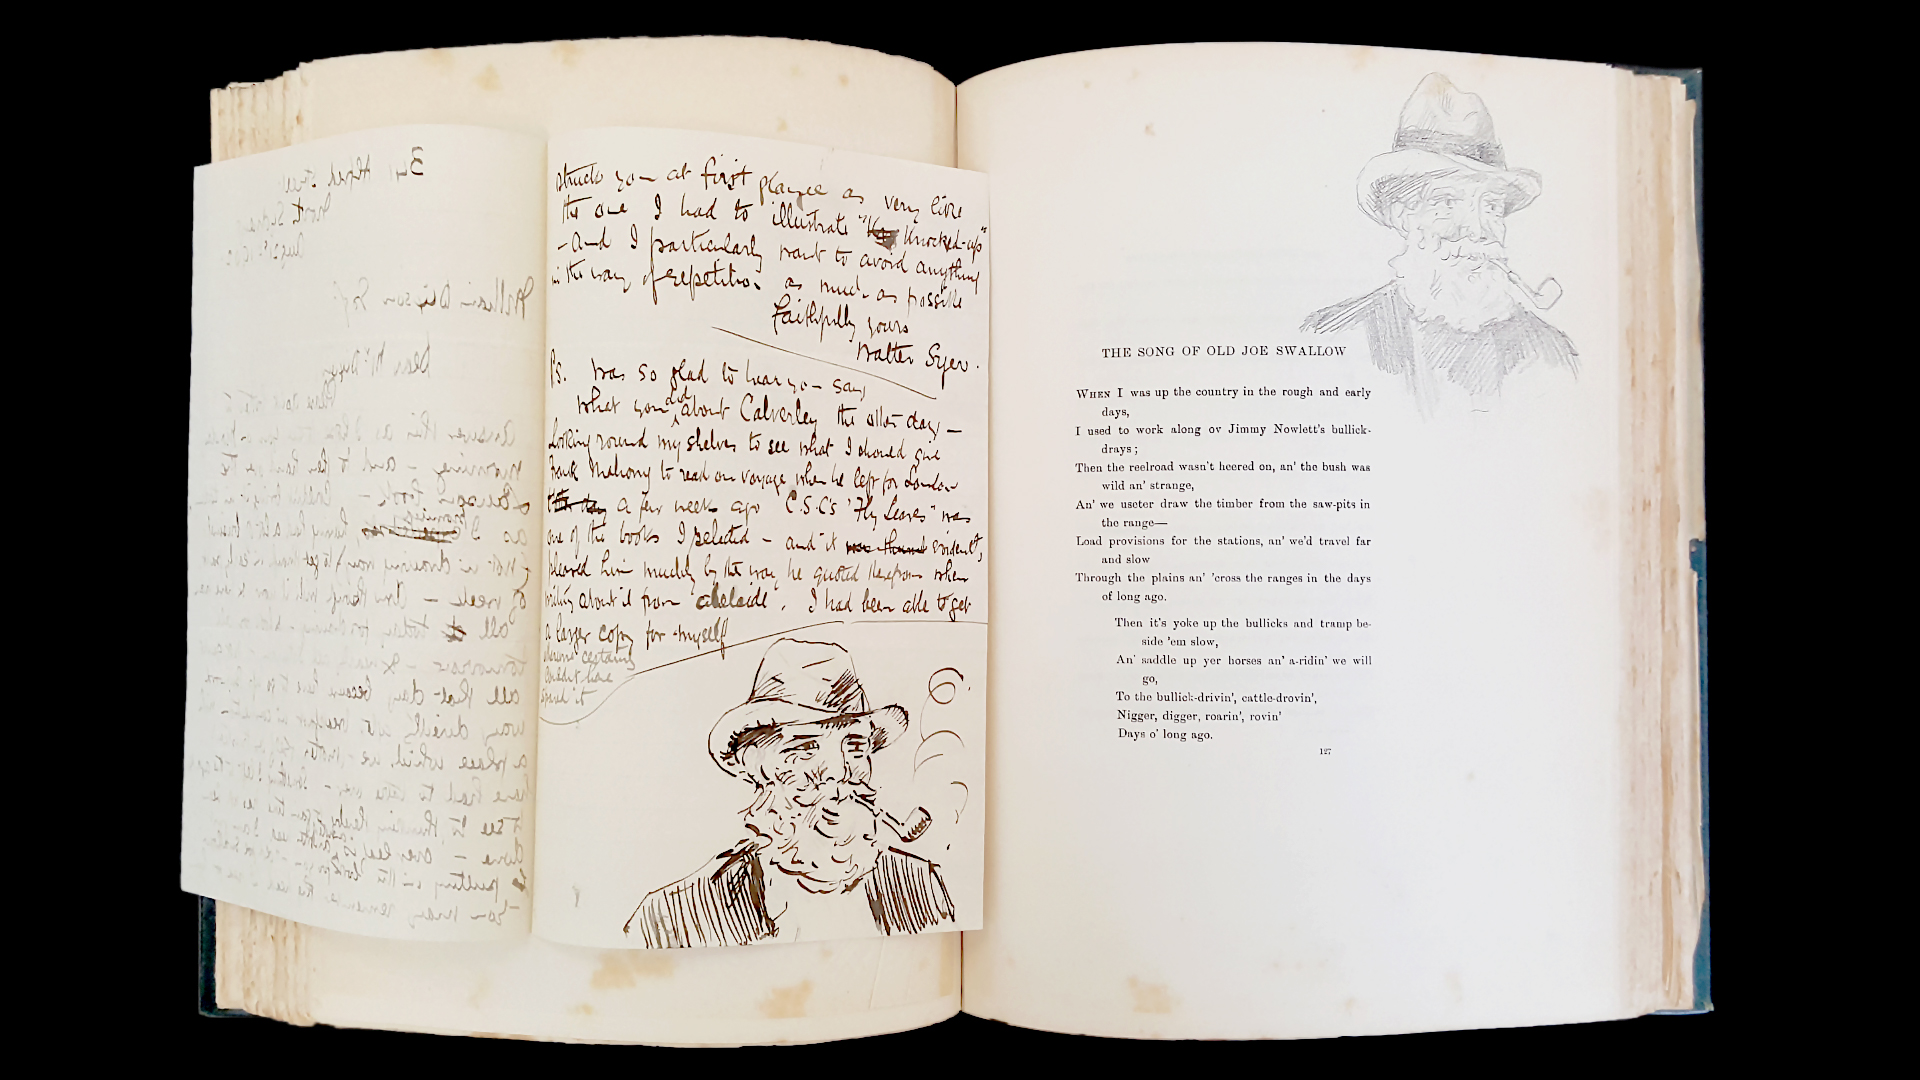 An open poetry book with hand drawings.